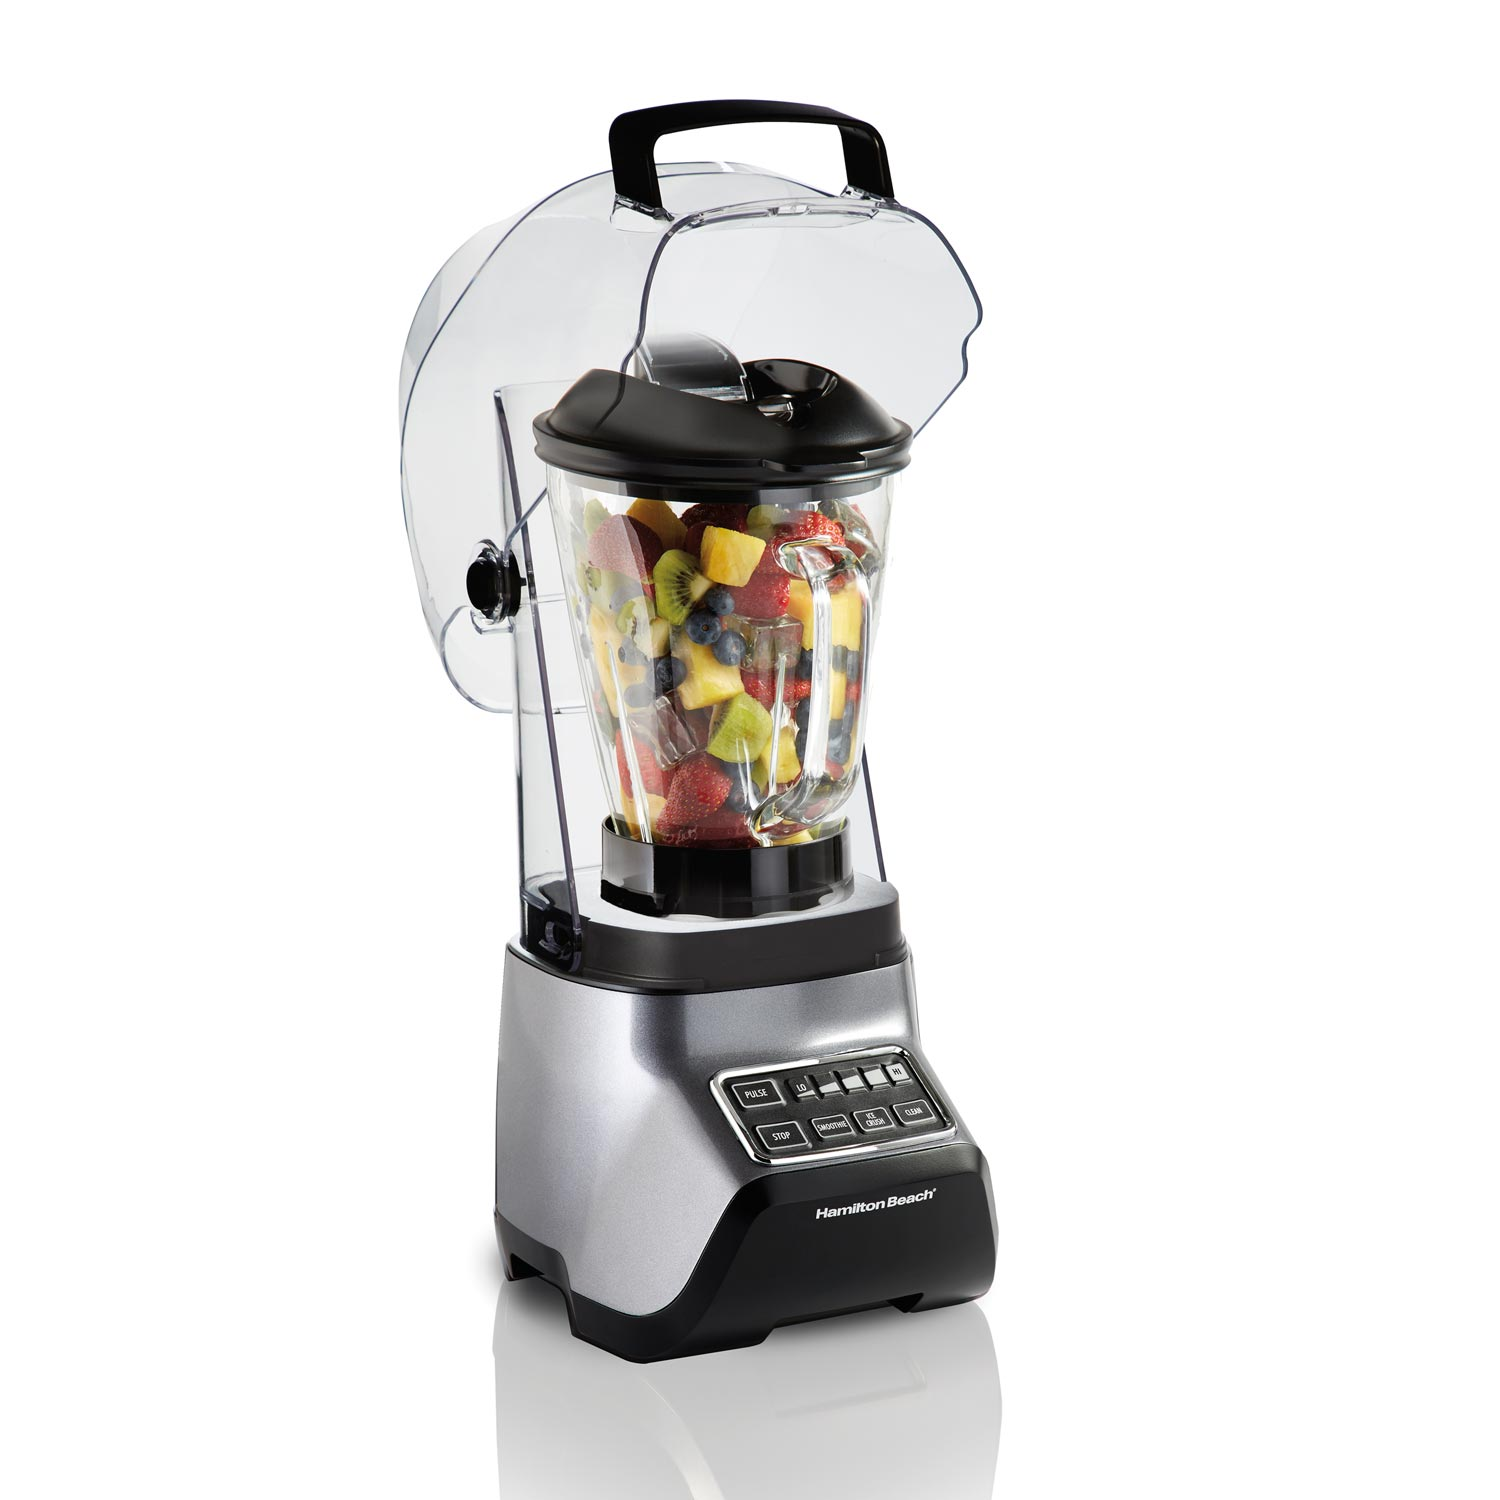 53602 Sound Shield 950 with 52 oz MultiBlend™ glass jar provides versatile blending for smoothies, icy drinks, salsas, soups, and more.